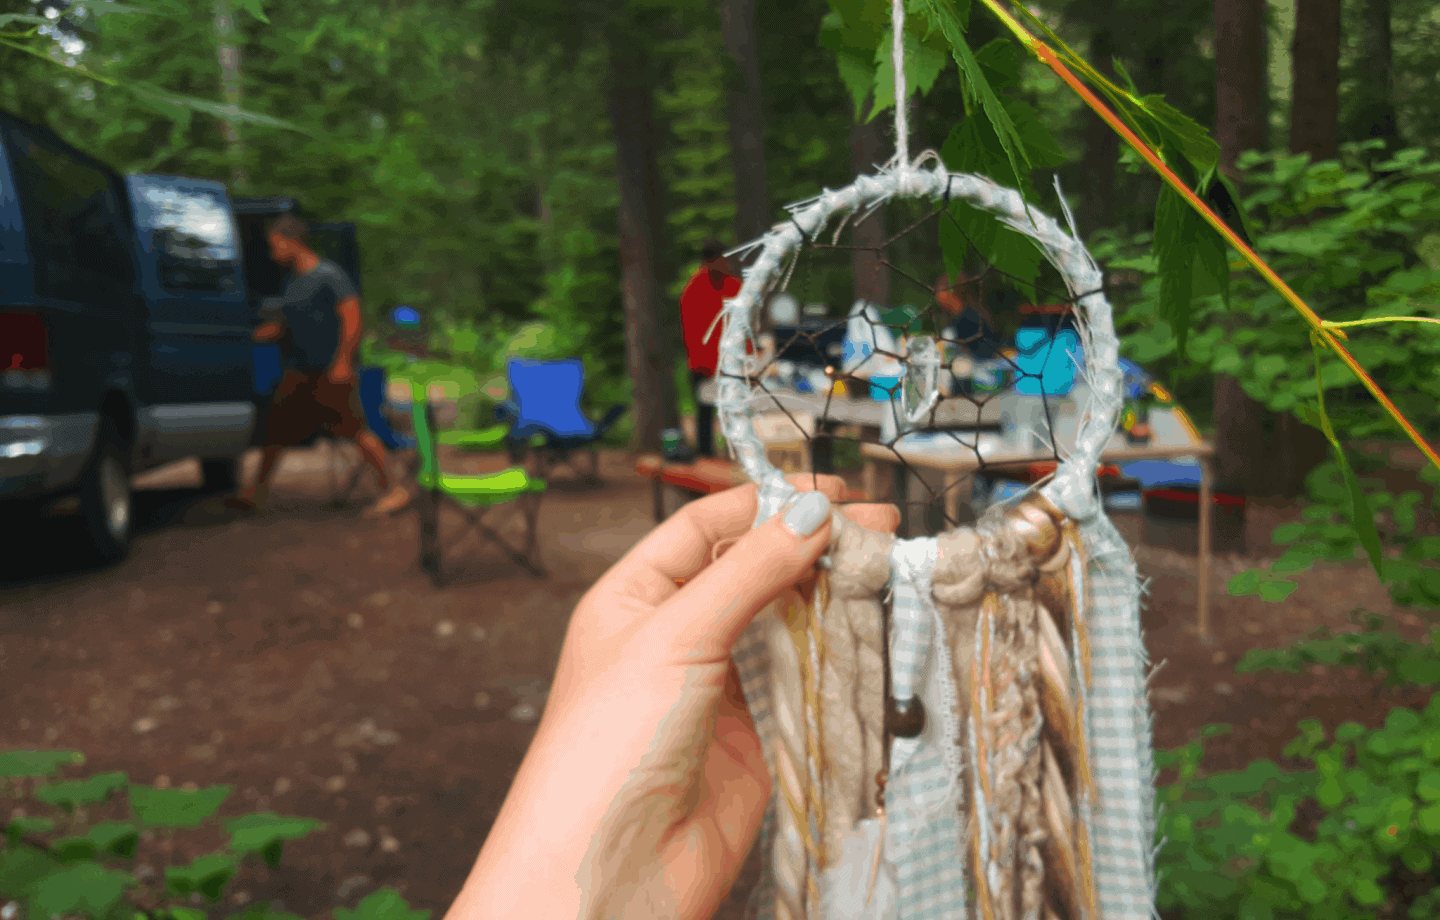 Every person living the vanlife needs a HippBee dreamcatcher in their van